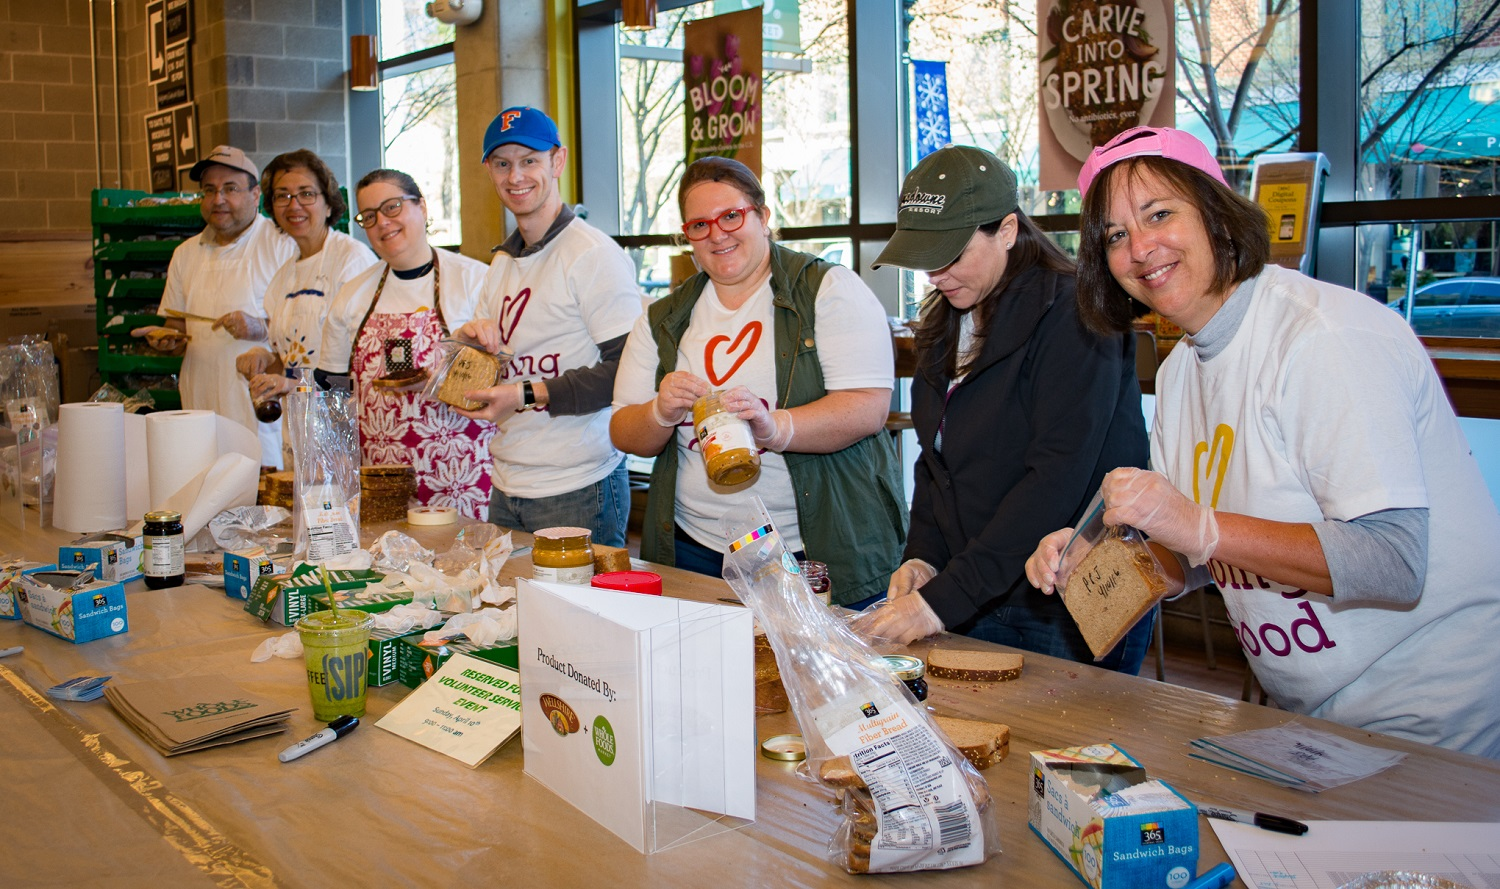 Volunteers from the Jewish Federation of Greater Washington make a meal.